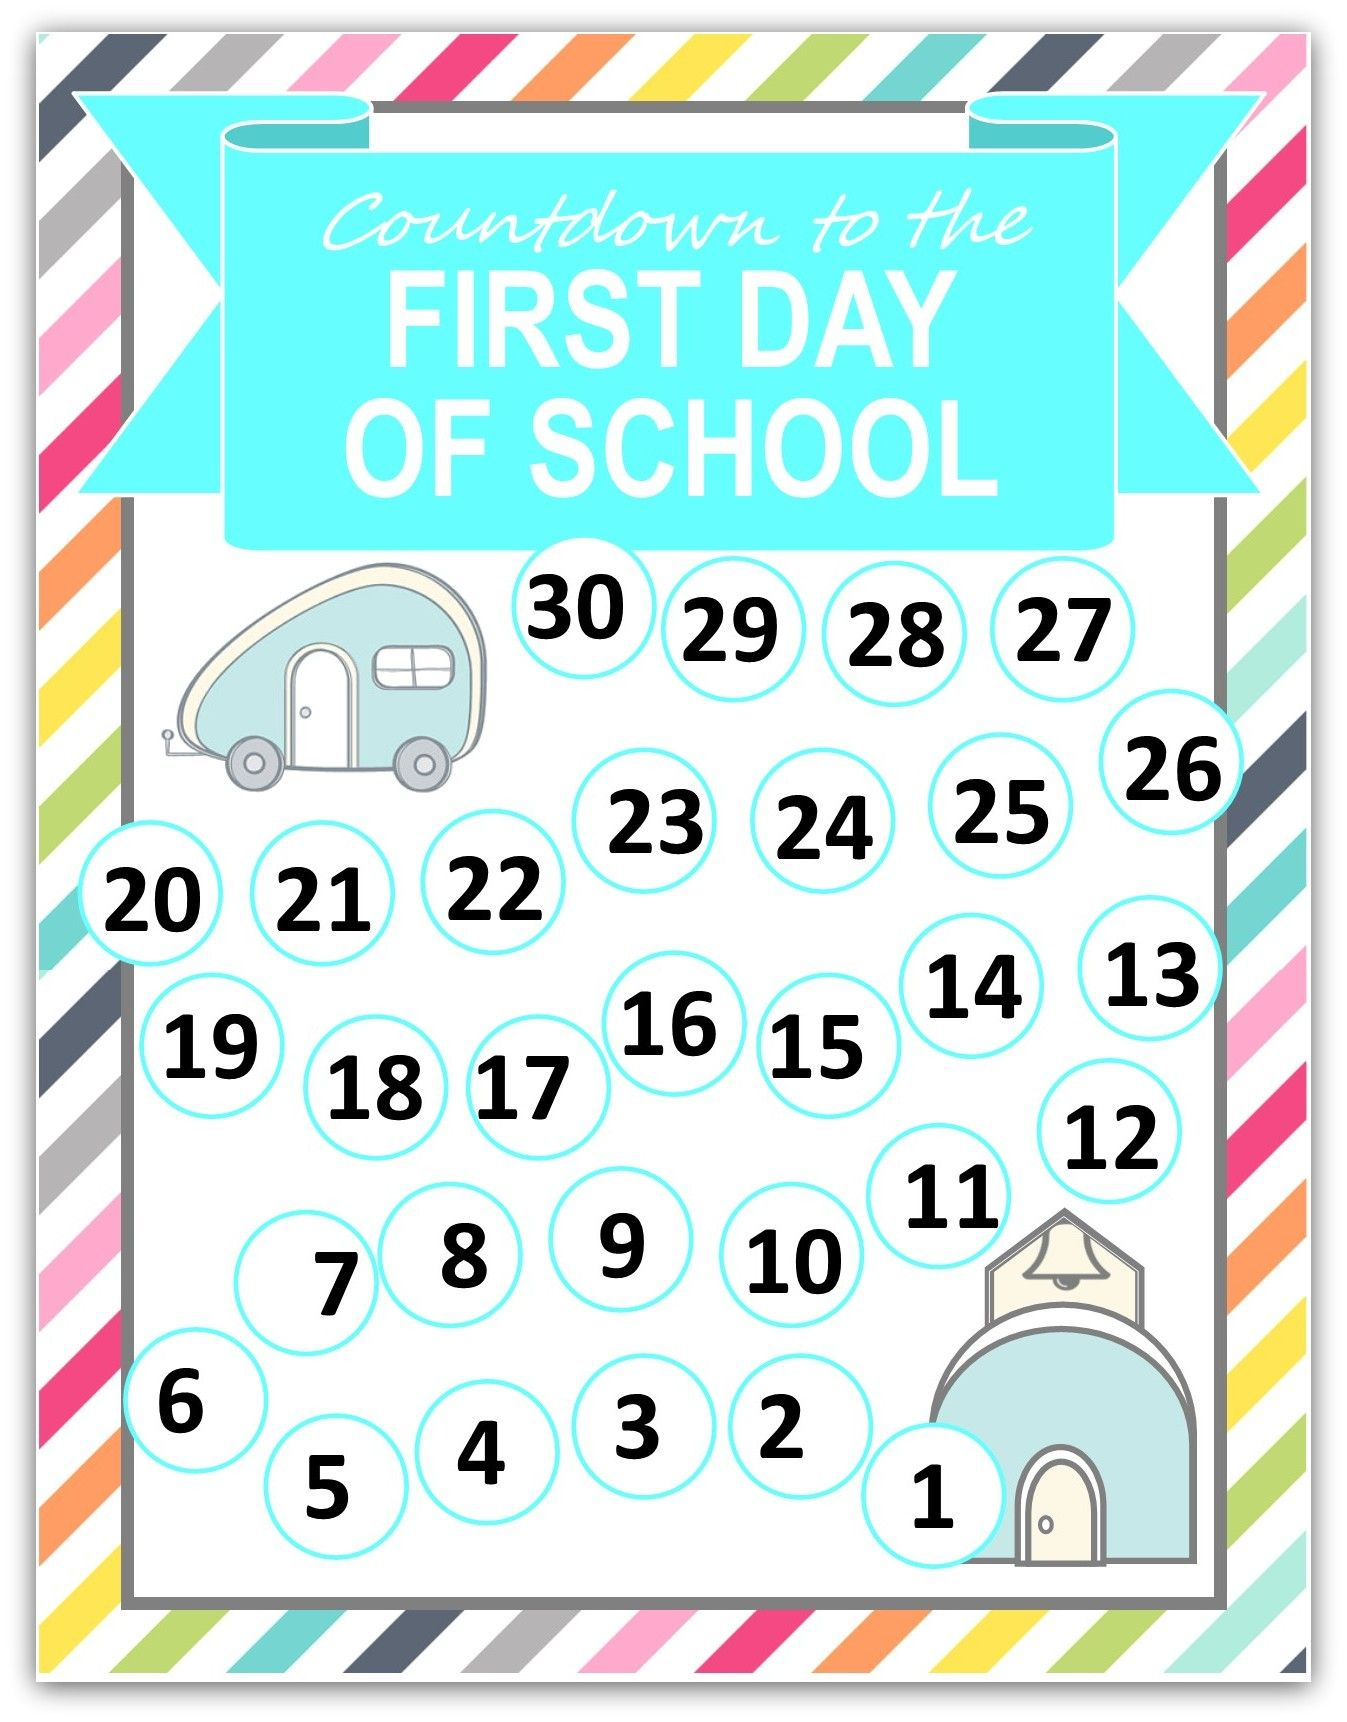 graphic about Countdown Printable titled Again towards College Countdown Printable and #Creativebuzz